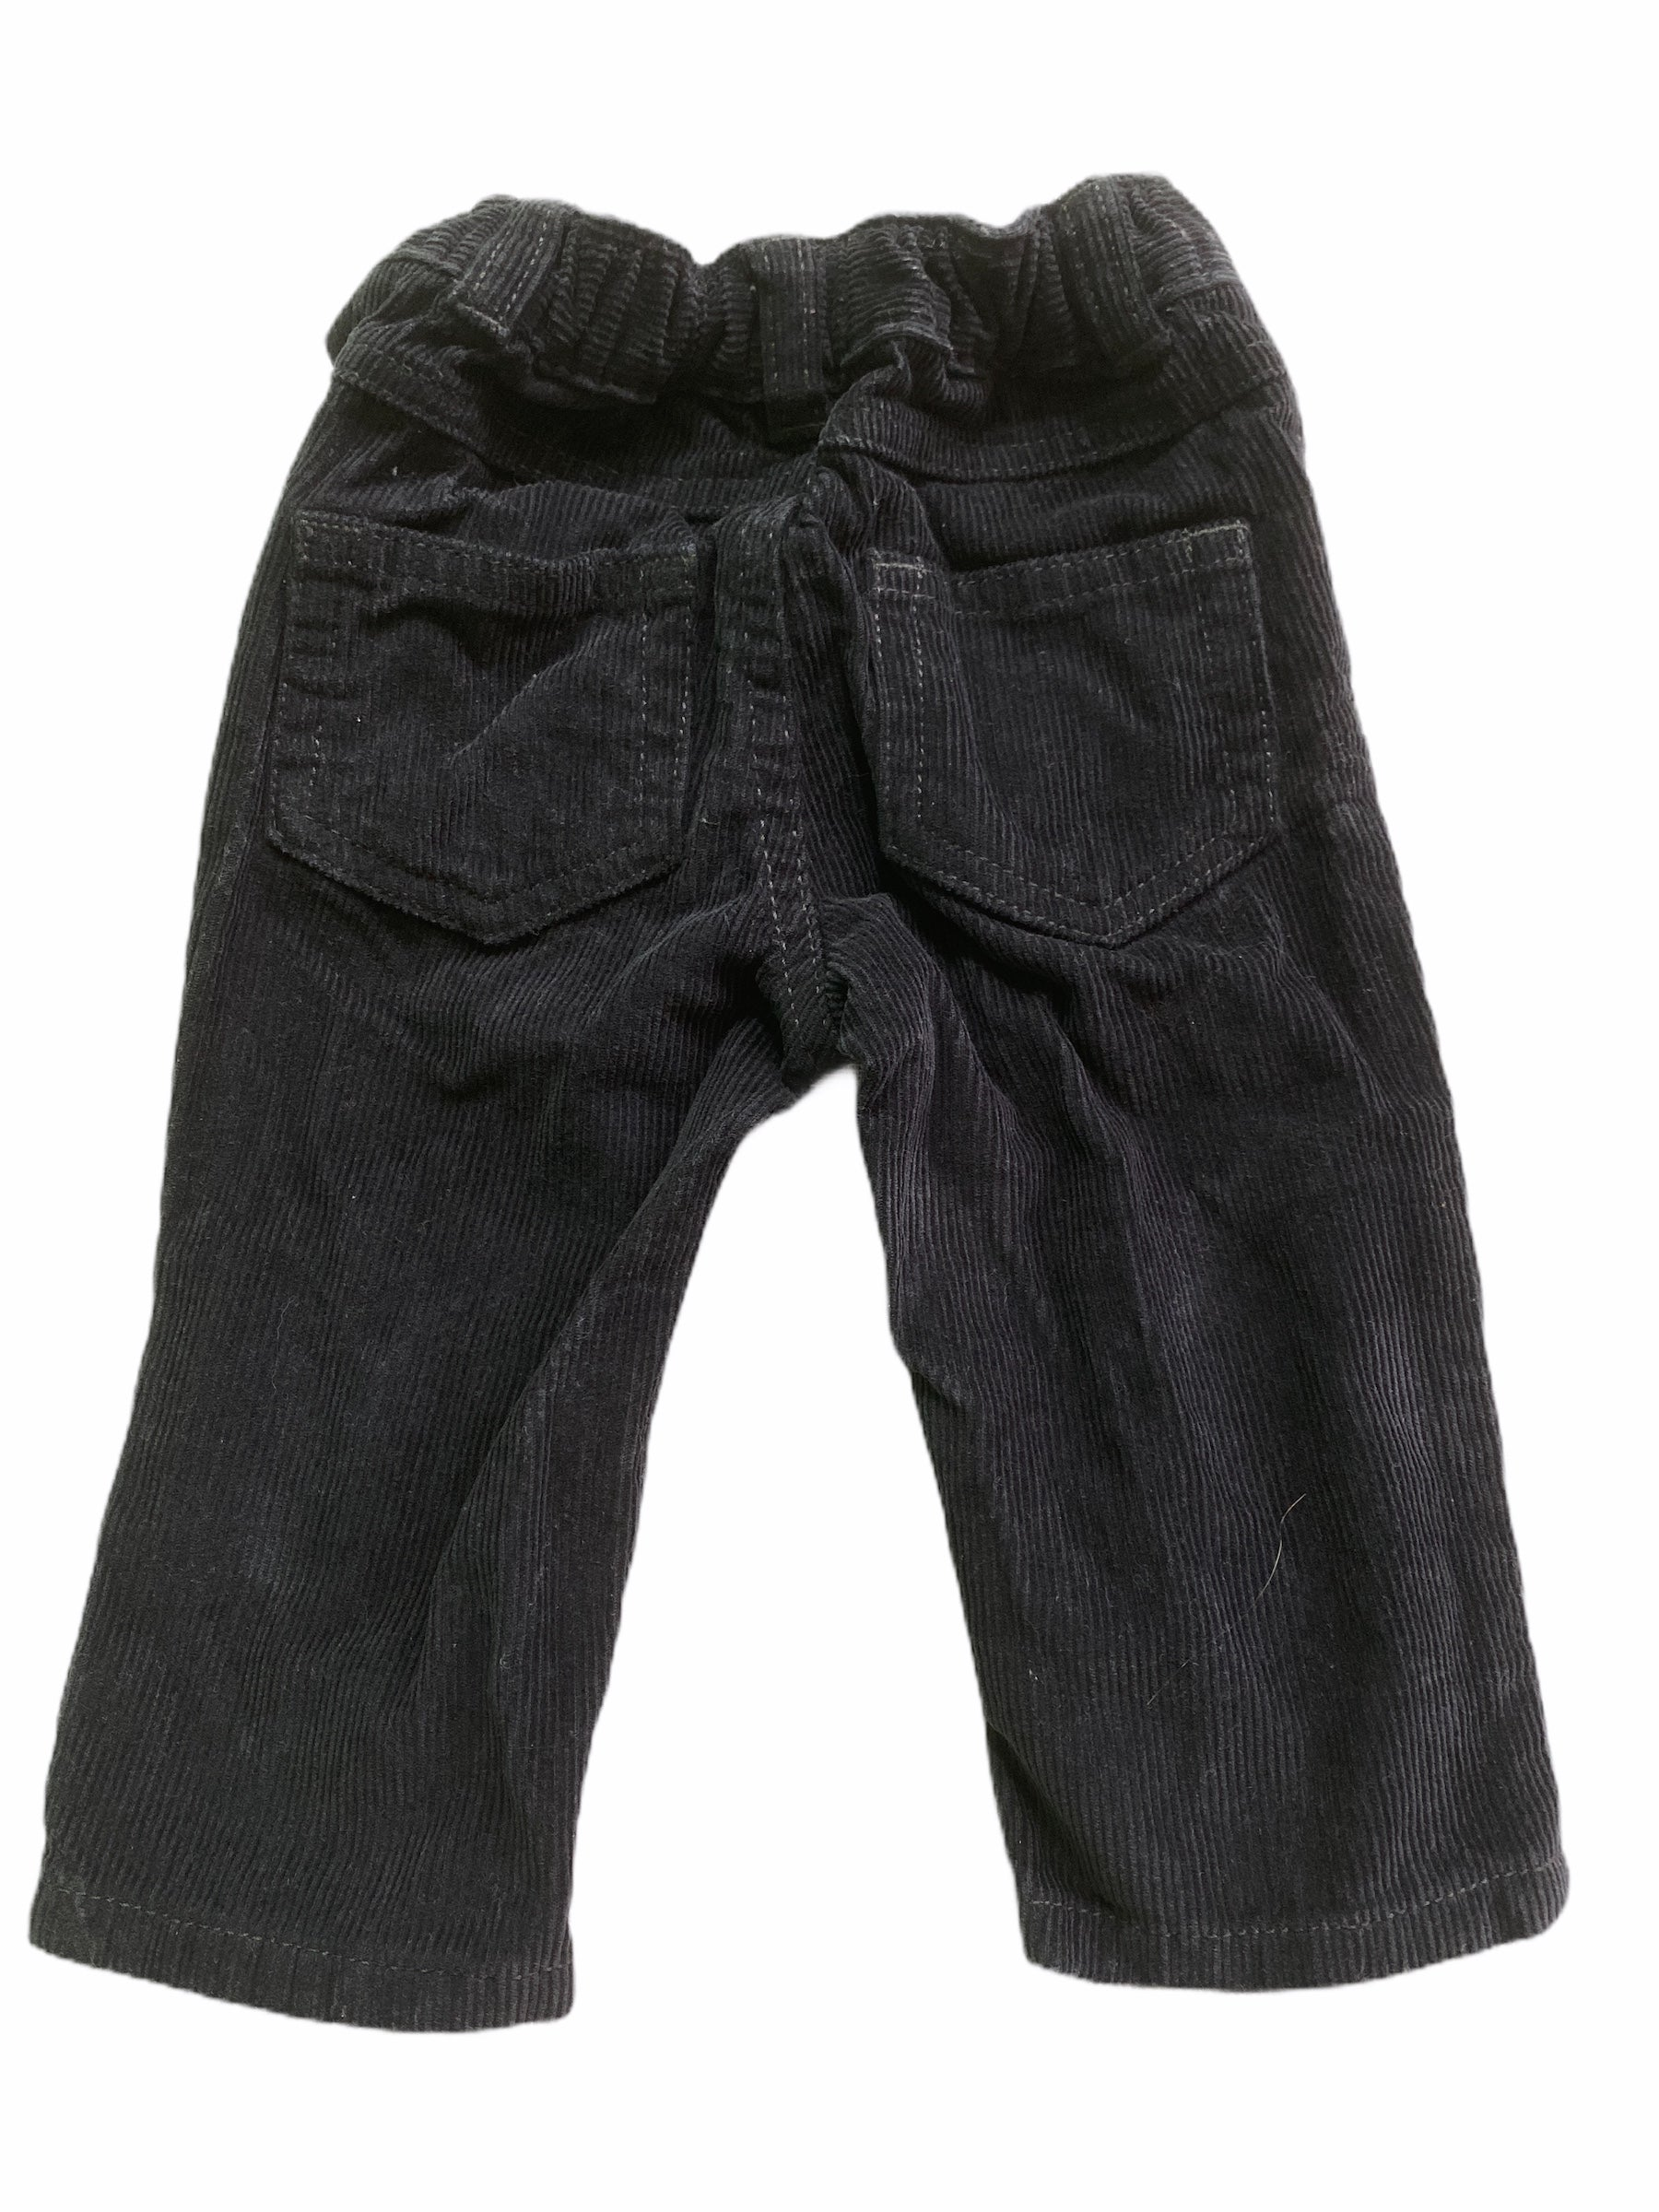 Carter's Black Cord Pant (6M Boys)